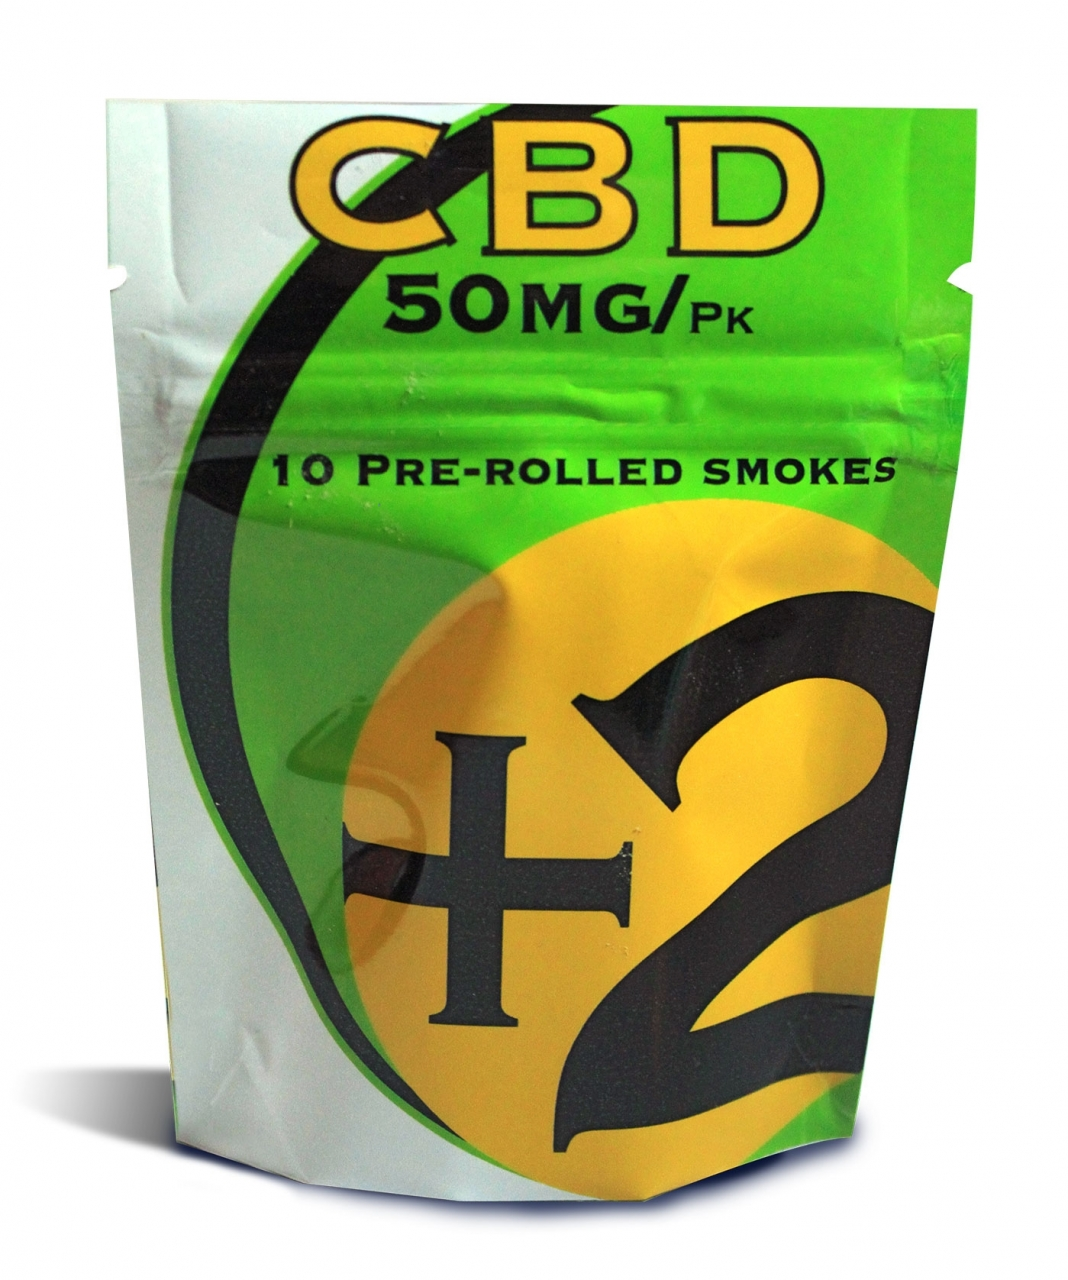 +2 CBD 2018-08-02 - +2 pre-rolled pack with filter 50mg dose, standard king size in a foil zipper bag